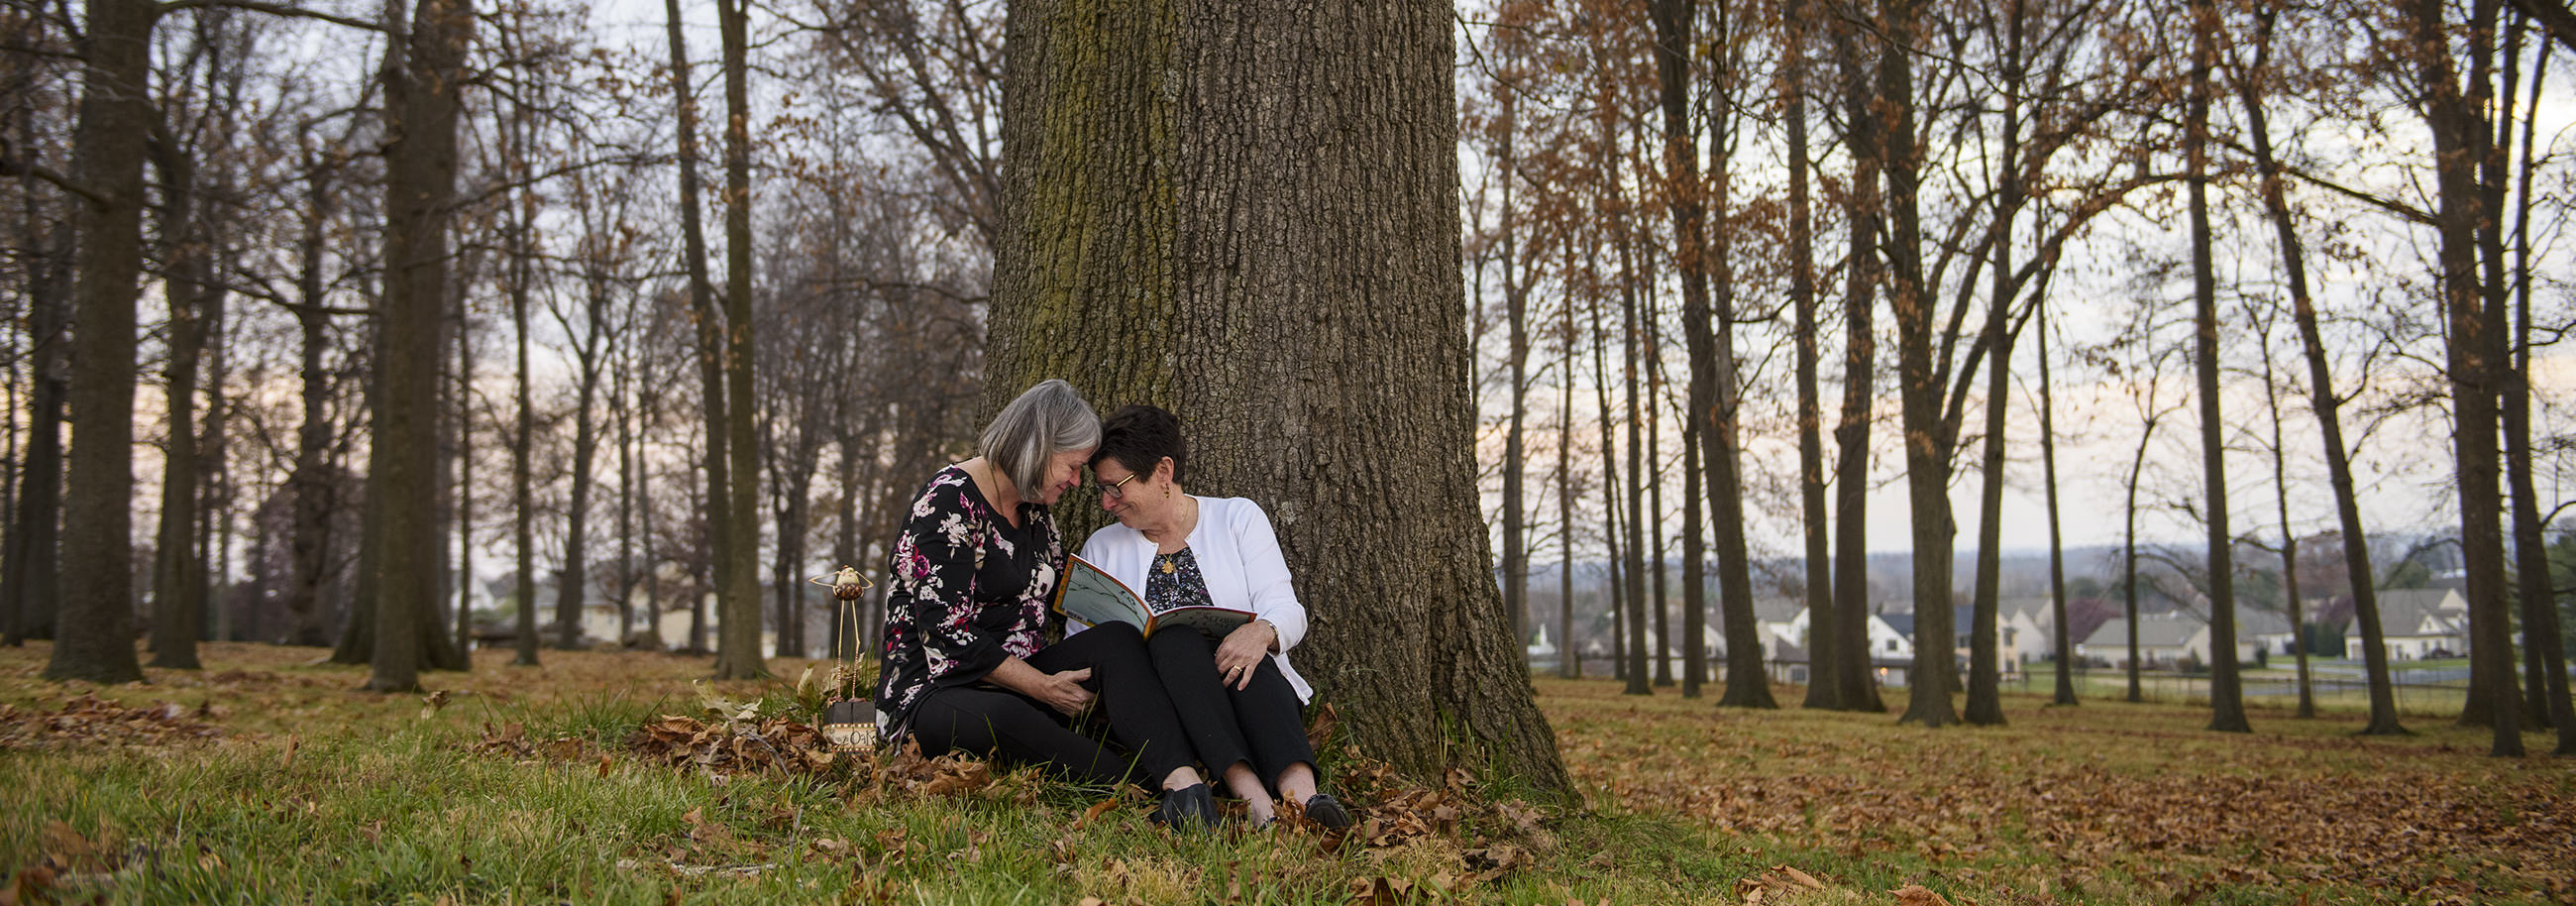 Illustrator Betsy Peterson and Garden Spot Team Member and Author Katie Mable share a quiet moment in the oak grove that inspired the Orphans and the Oak.